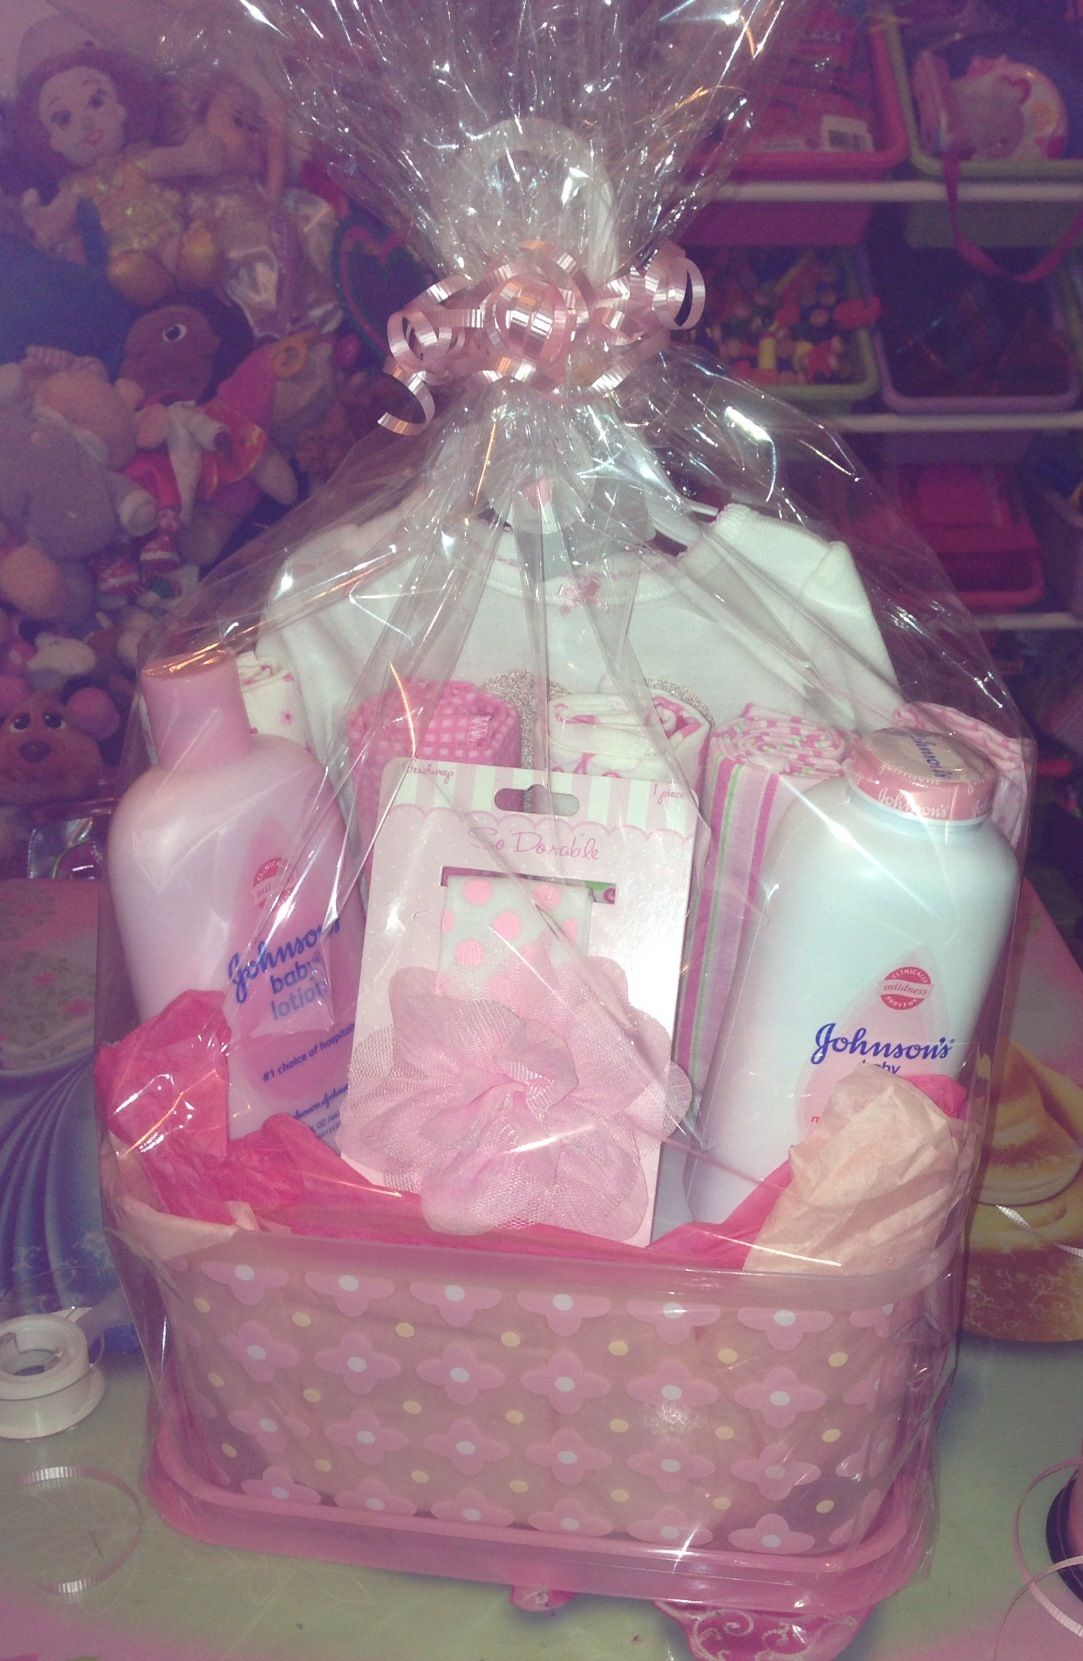 Diy baby shower gift basket for a girl diy ideas pinterest diy baby shower gift basket for a girl solutioingenieria Gallery